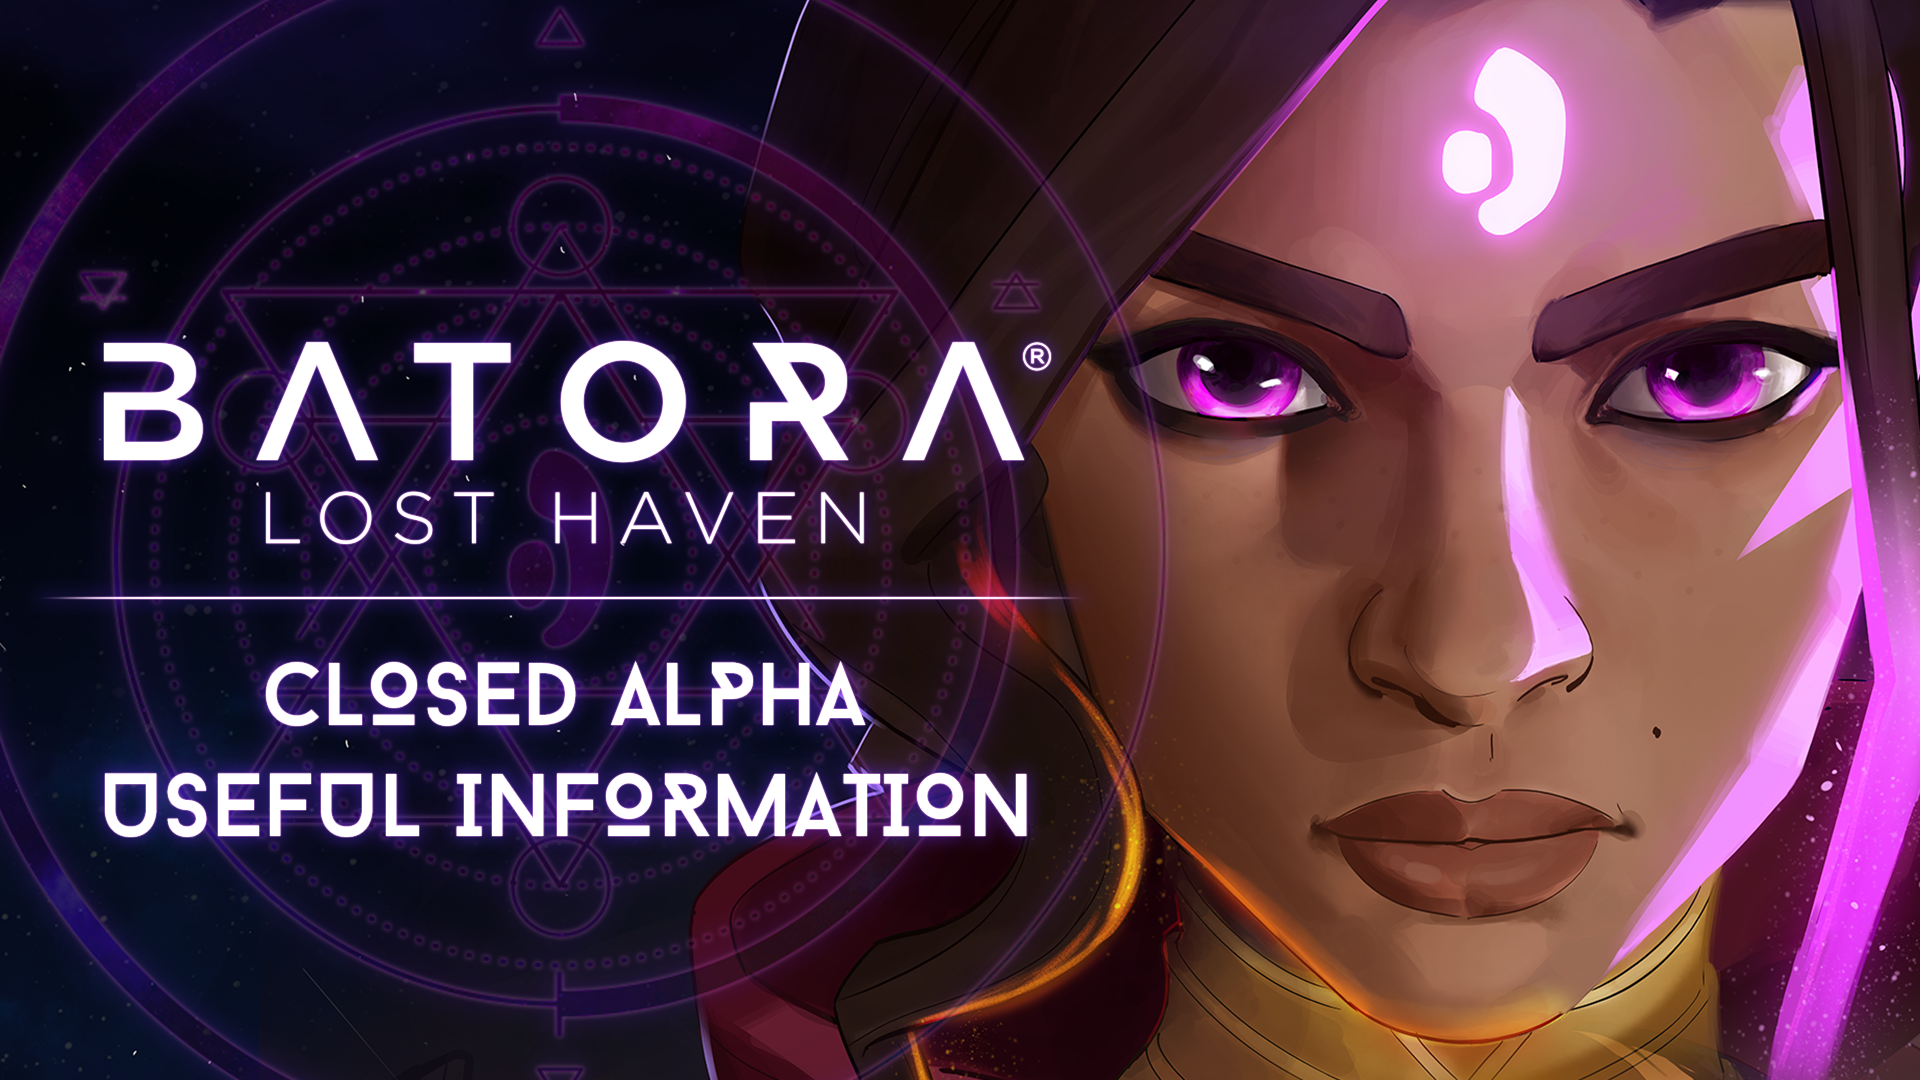 Some useful information about the Closed Alpha of Batora: Lost Haven